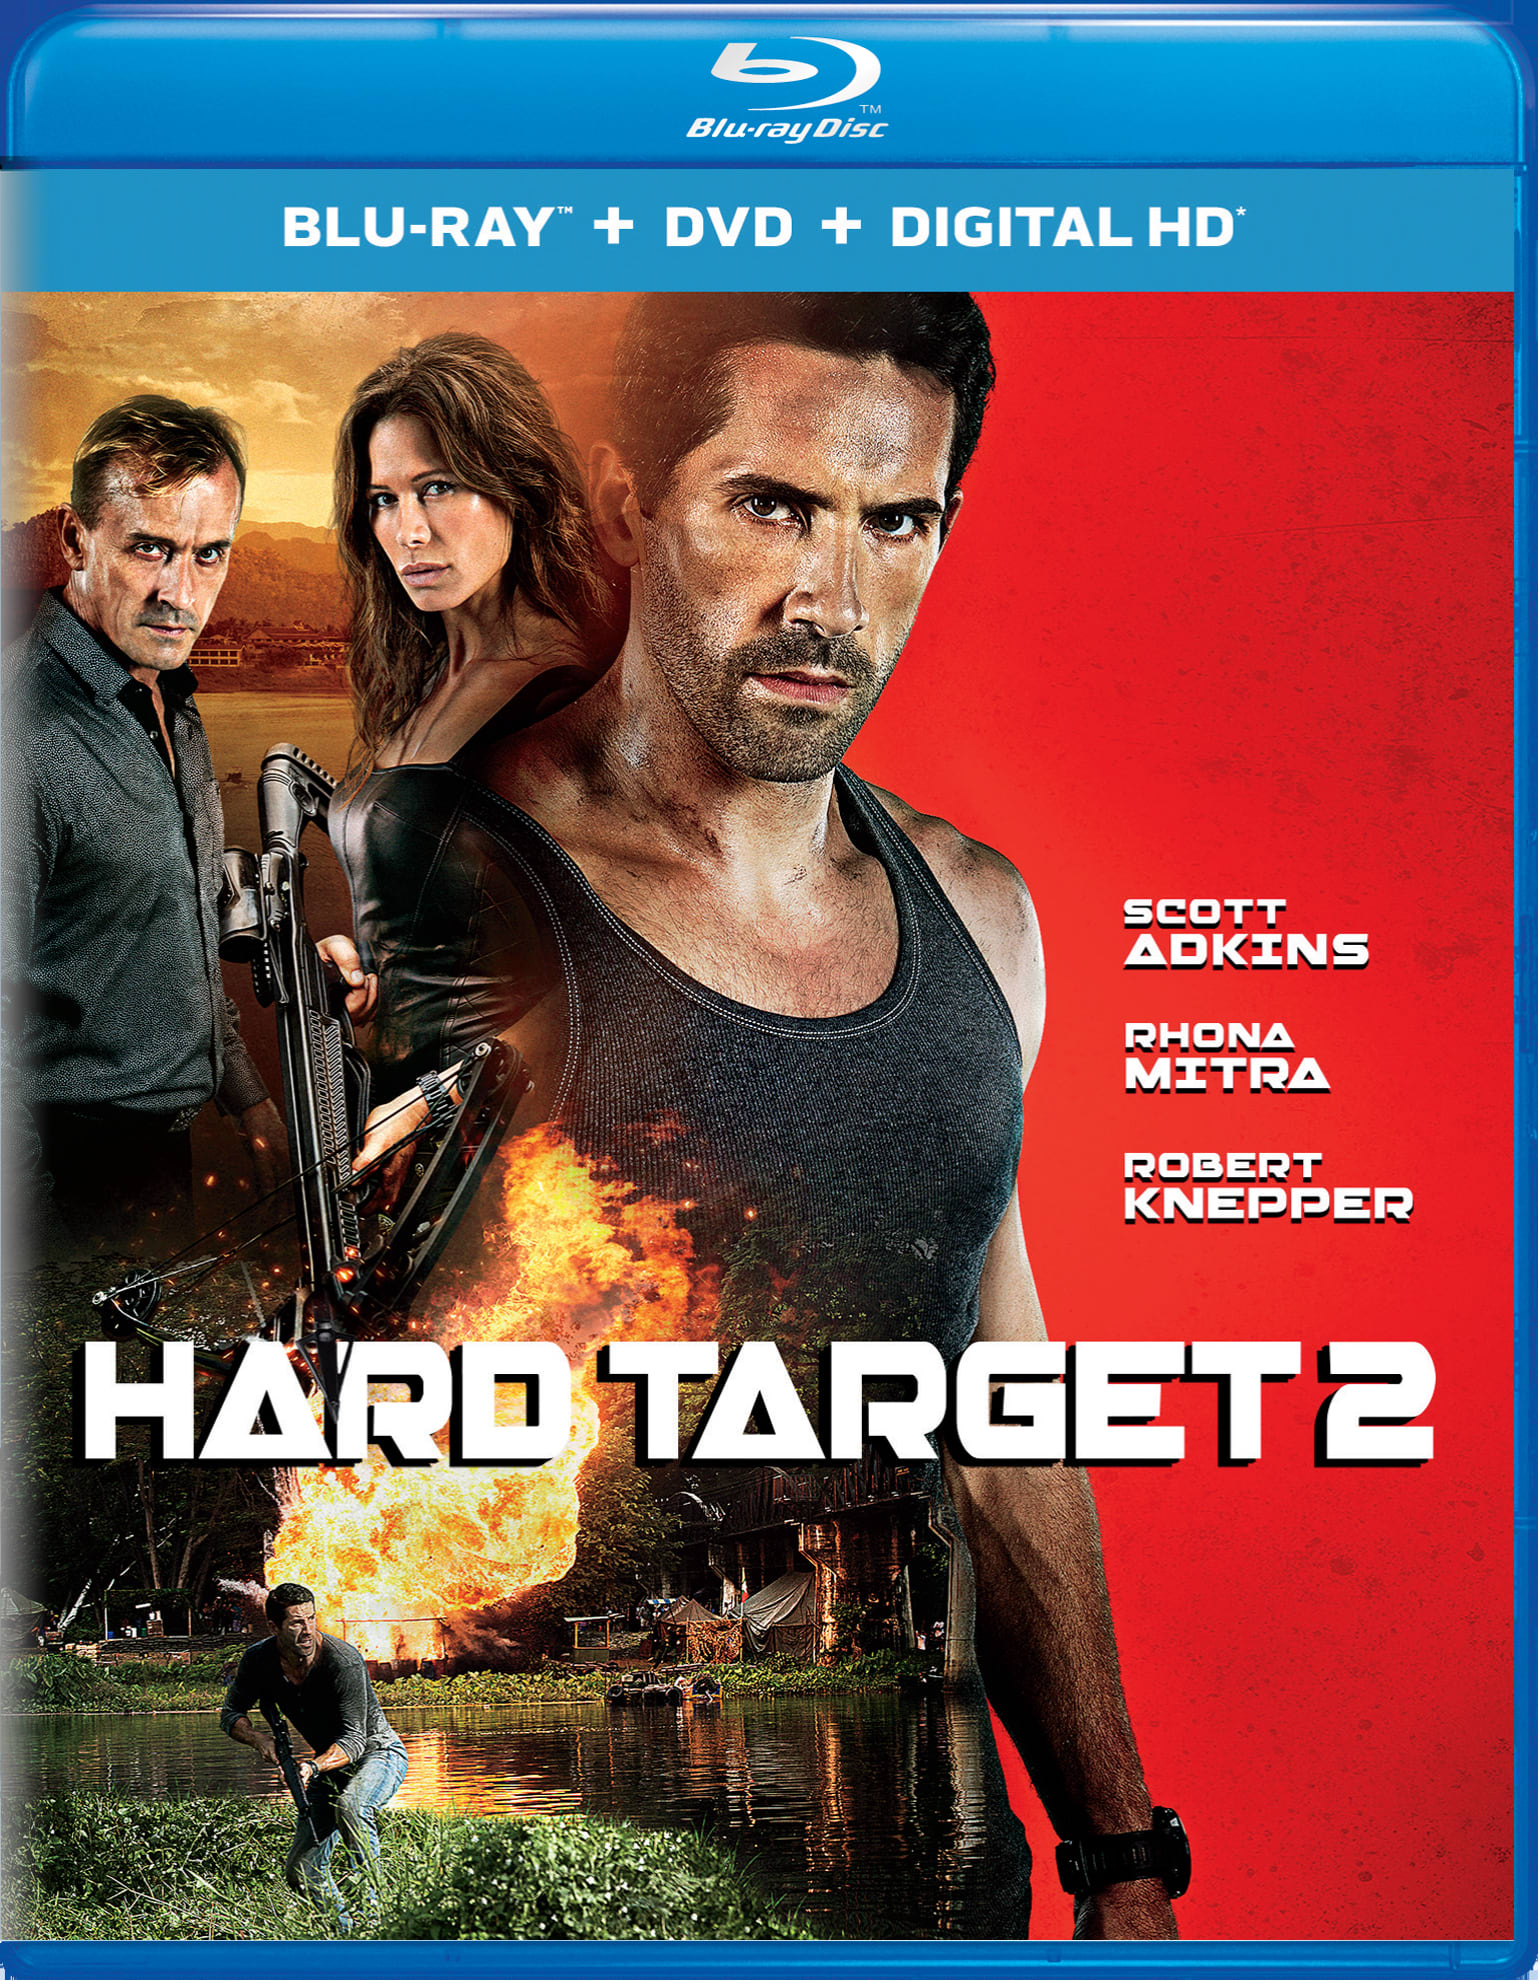 Hard Target 2 (DVD + Digital) [Blu-ray]